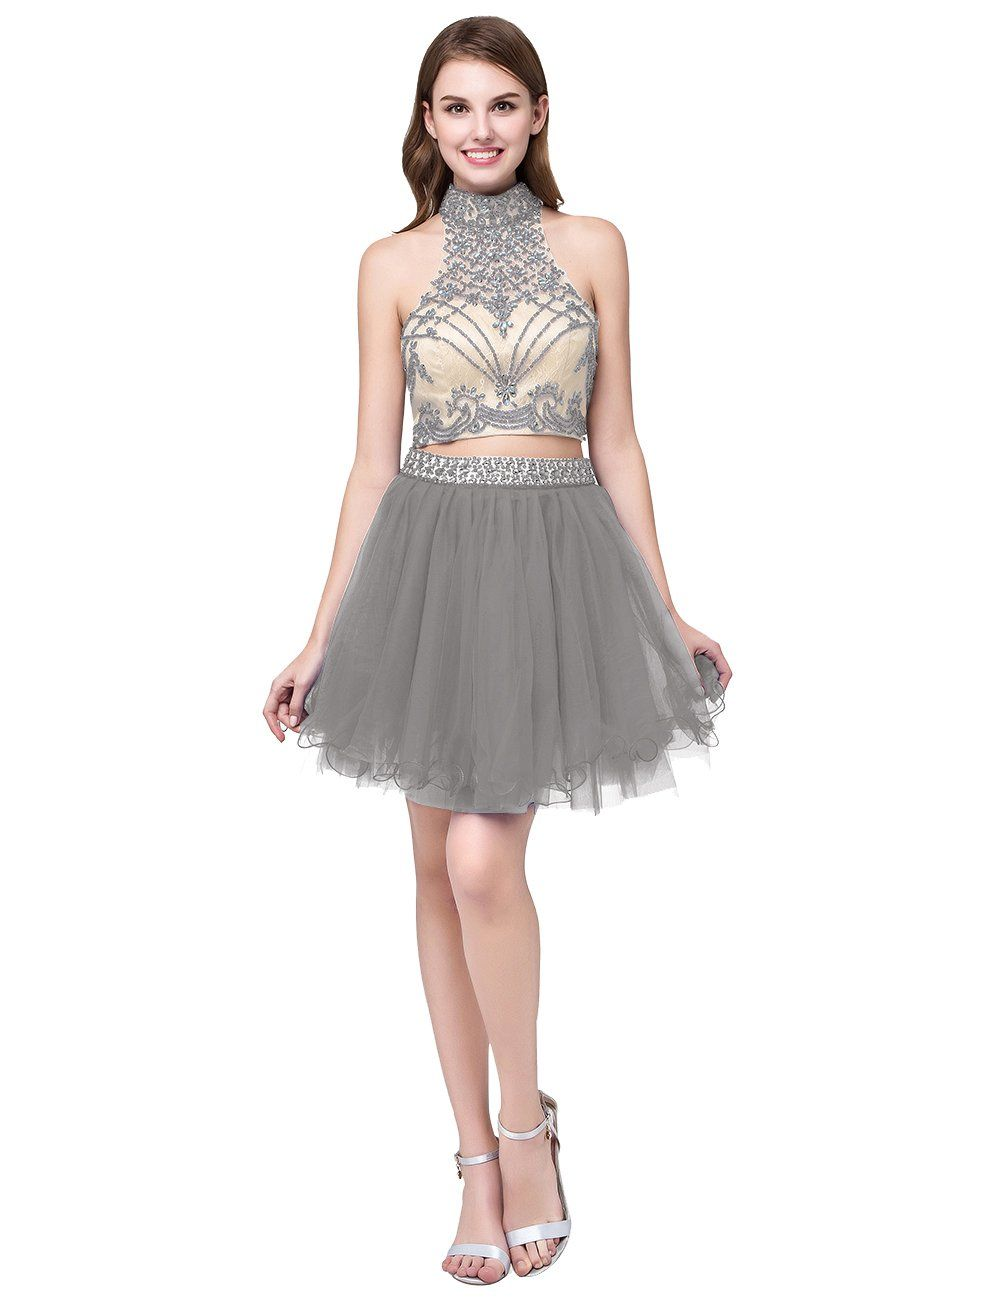 Cdress womens beaded two pieces short tulle homecoming dresses mini